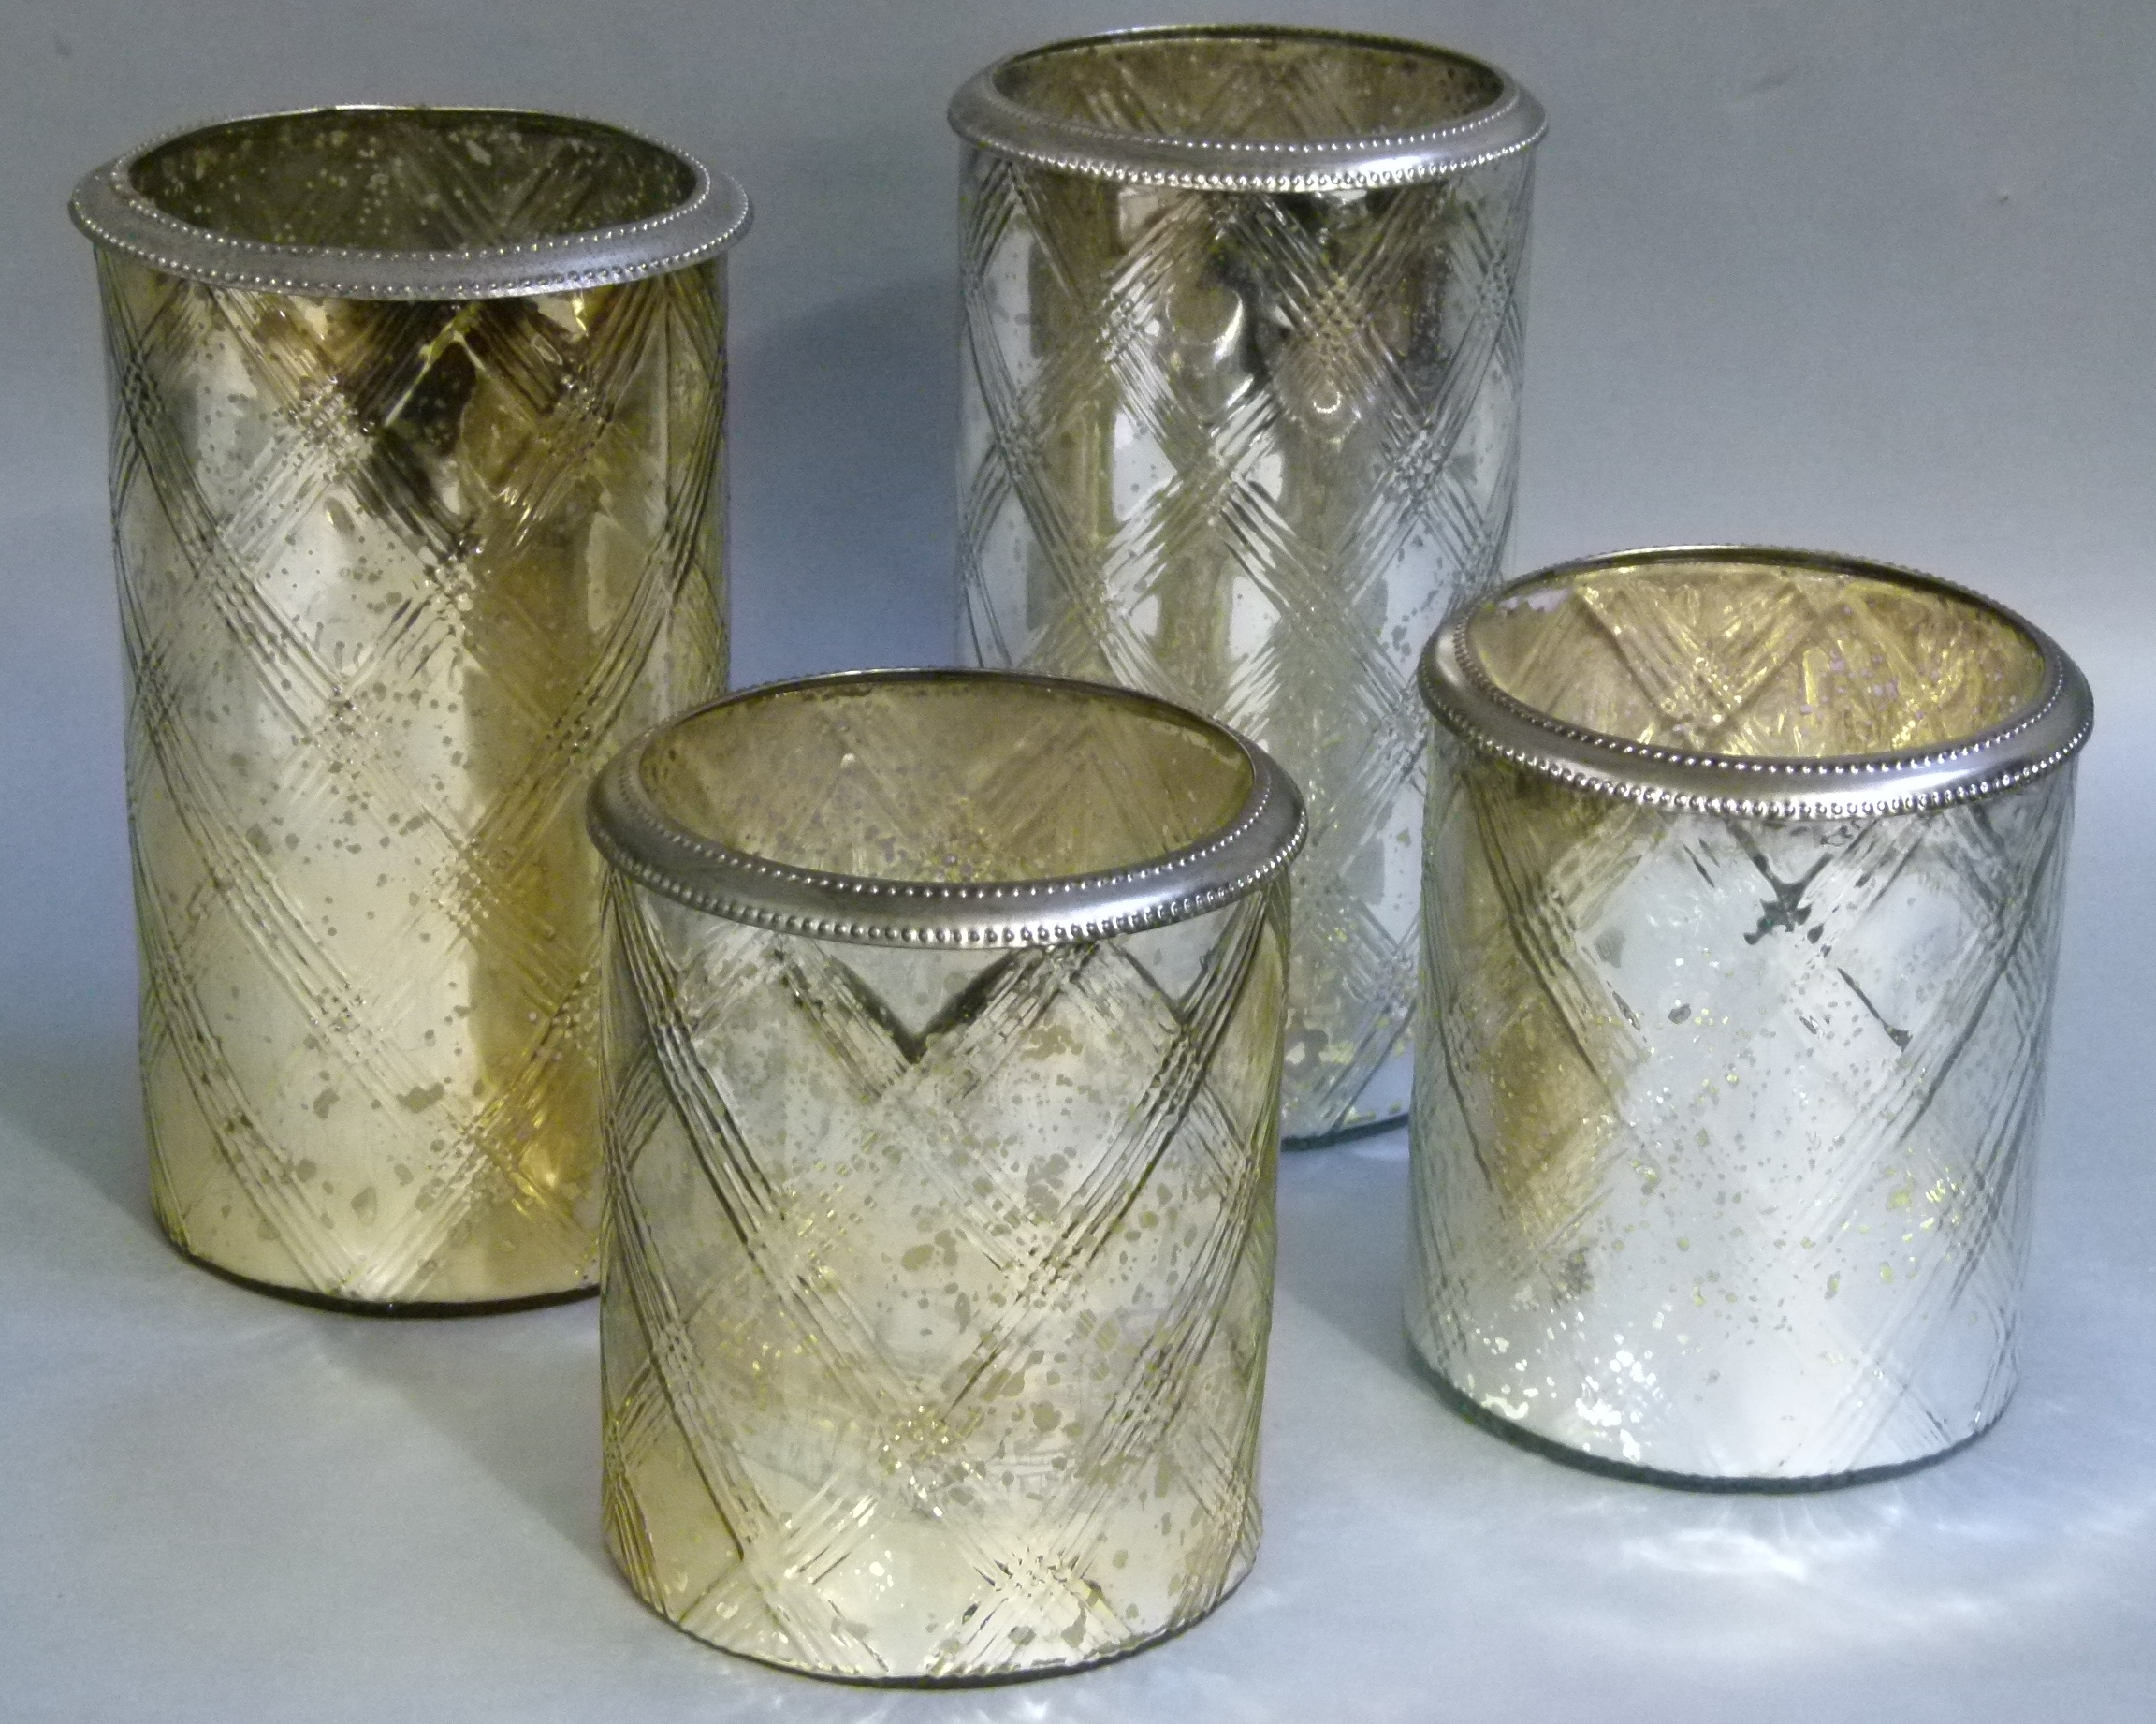 Lot 76 - Two pairs of silvered glass vases of cylindrical form each moulded with criss cross decoration,